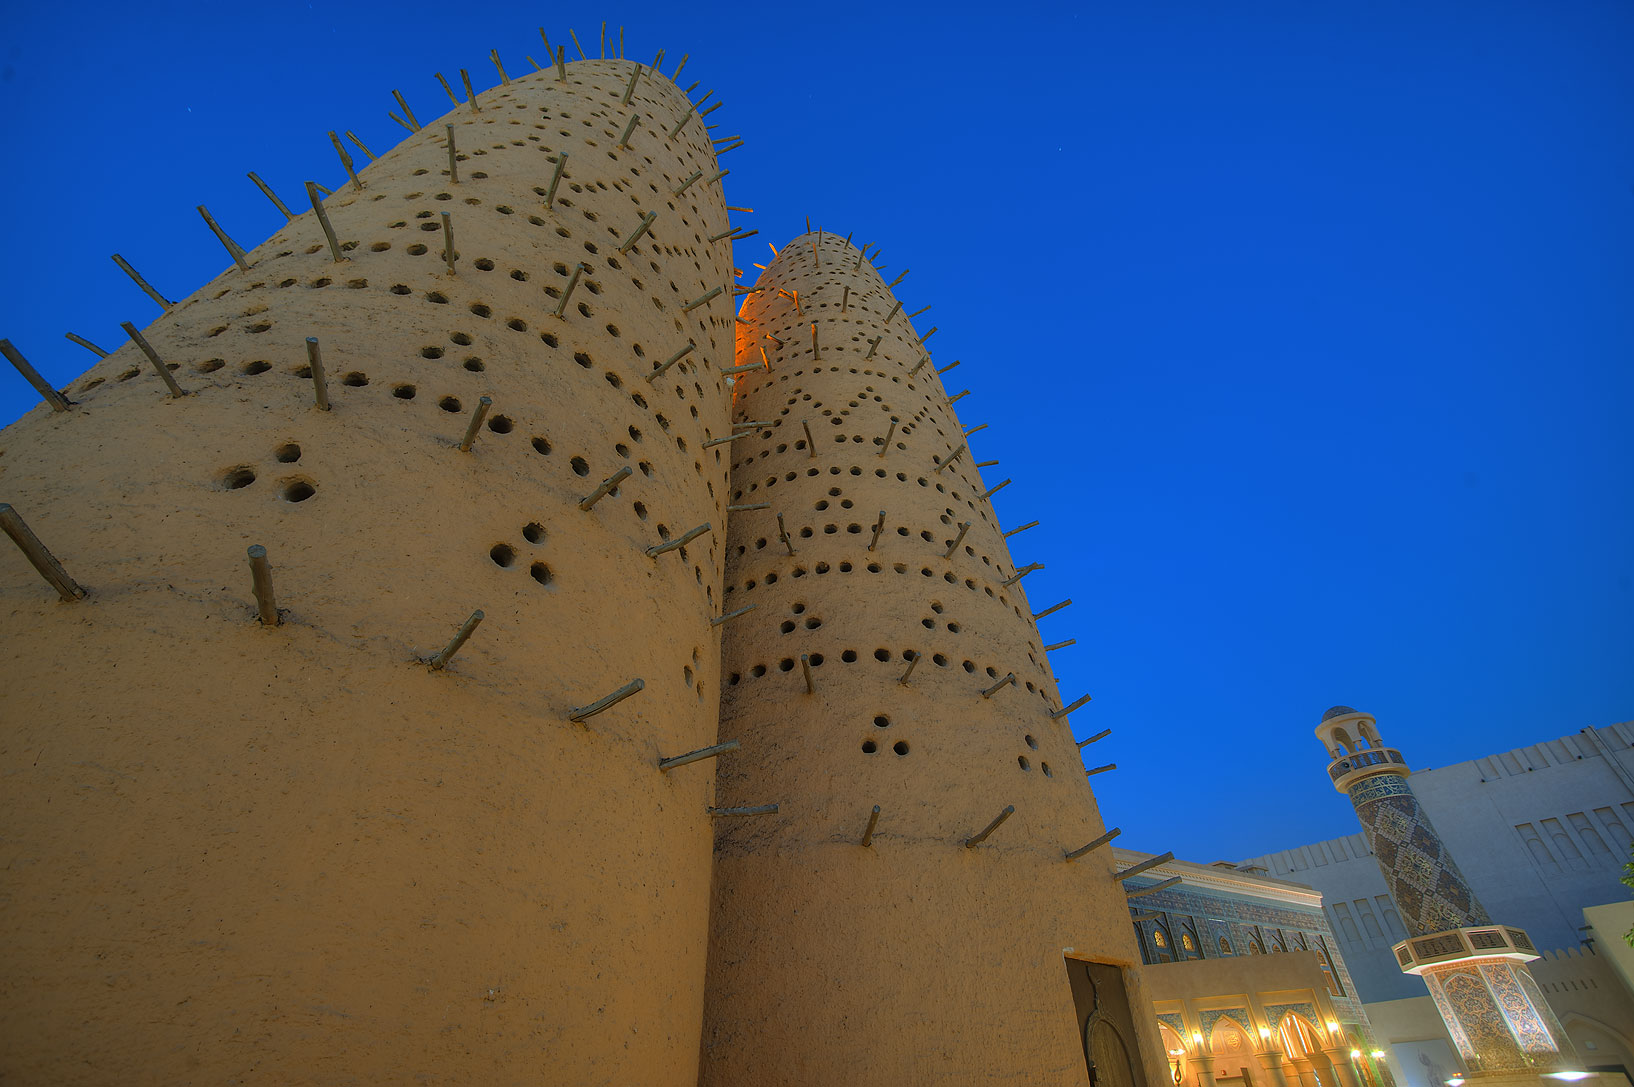 Dovecots and Iranian style mosque in Katara Cultural Village. Doha, Qatar